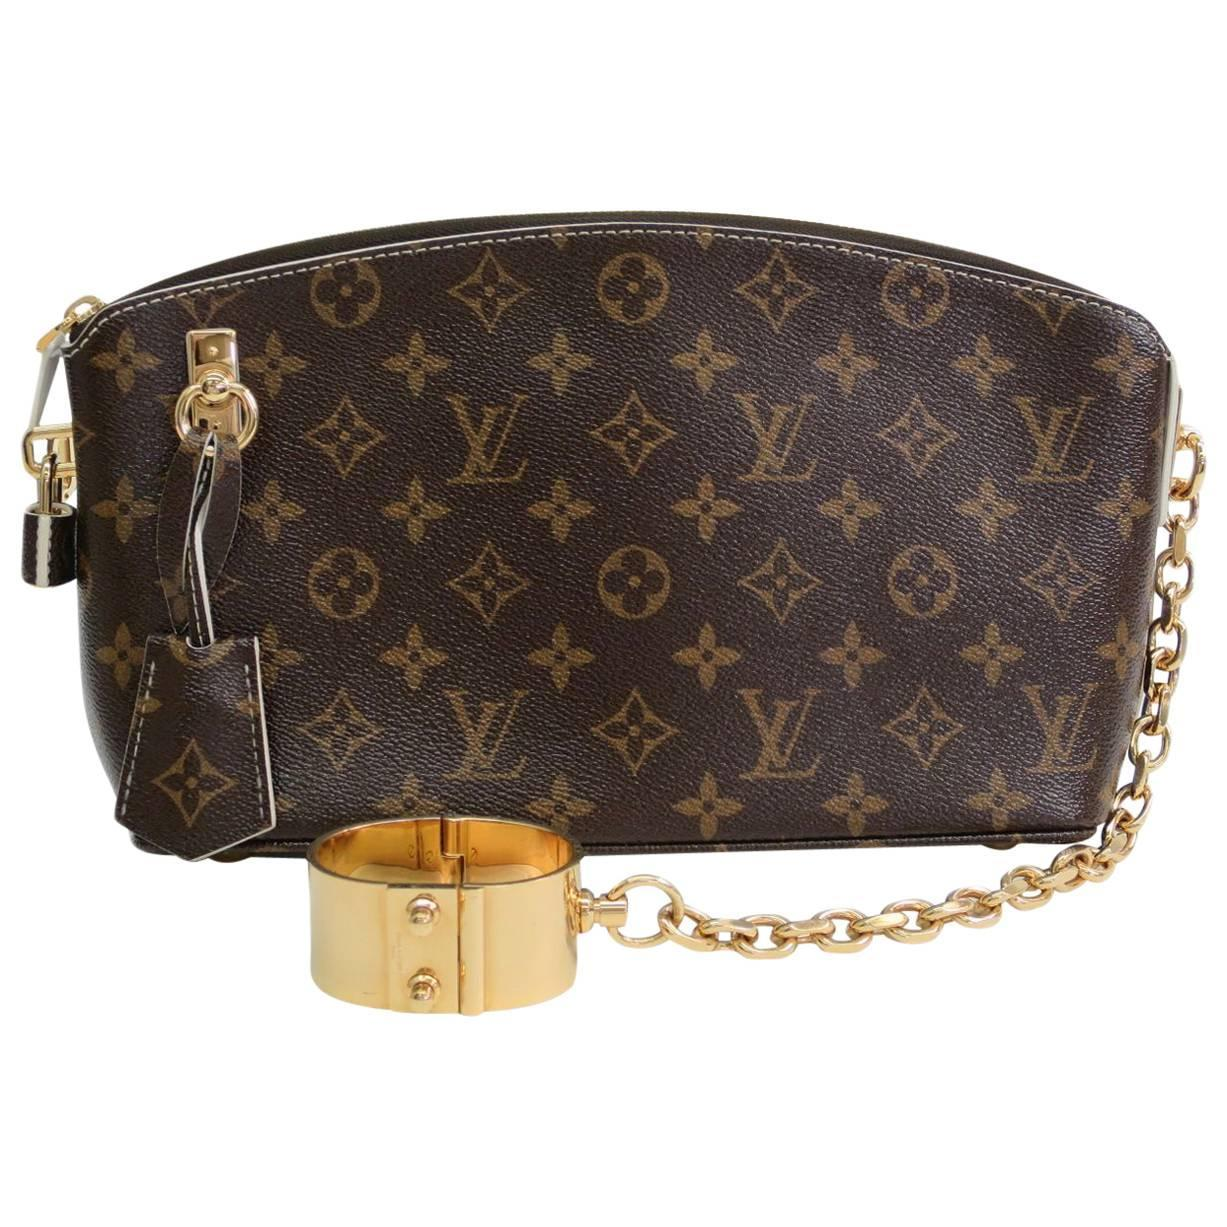 louis vuitton monogram canvas gold chain clutch cuff bag with all accessories at 1stdibs